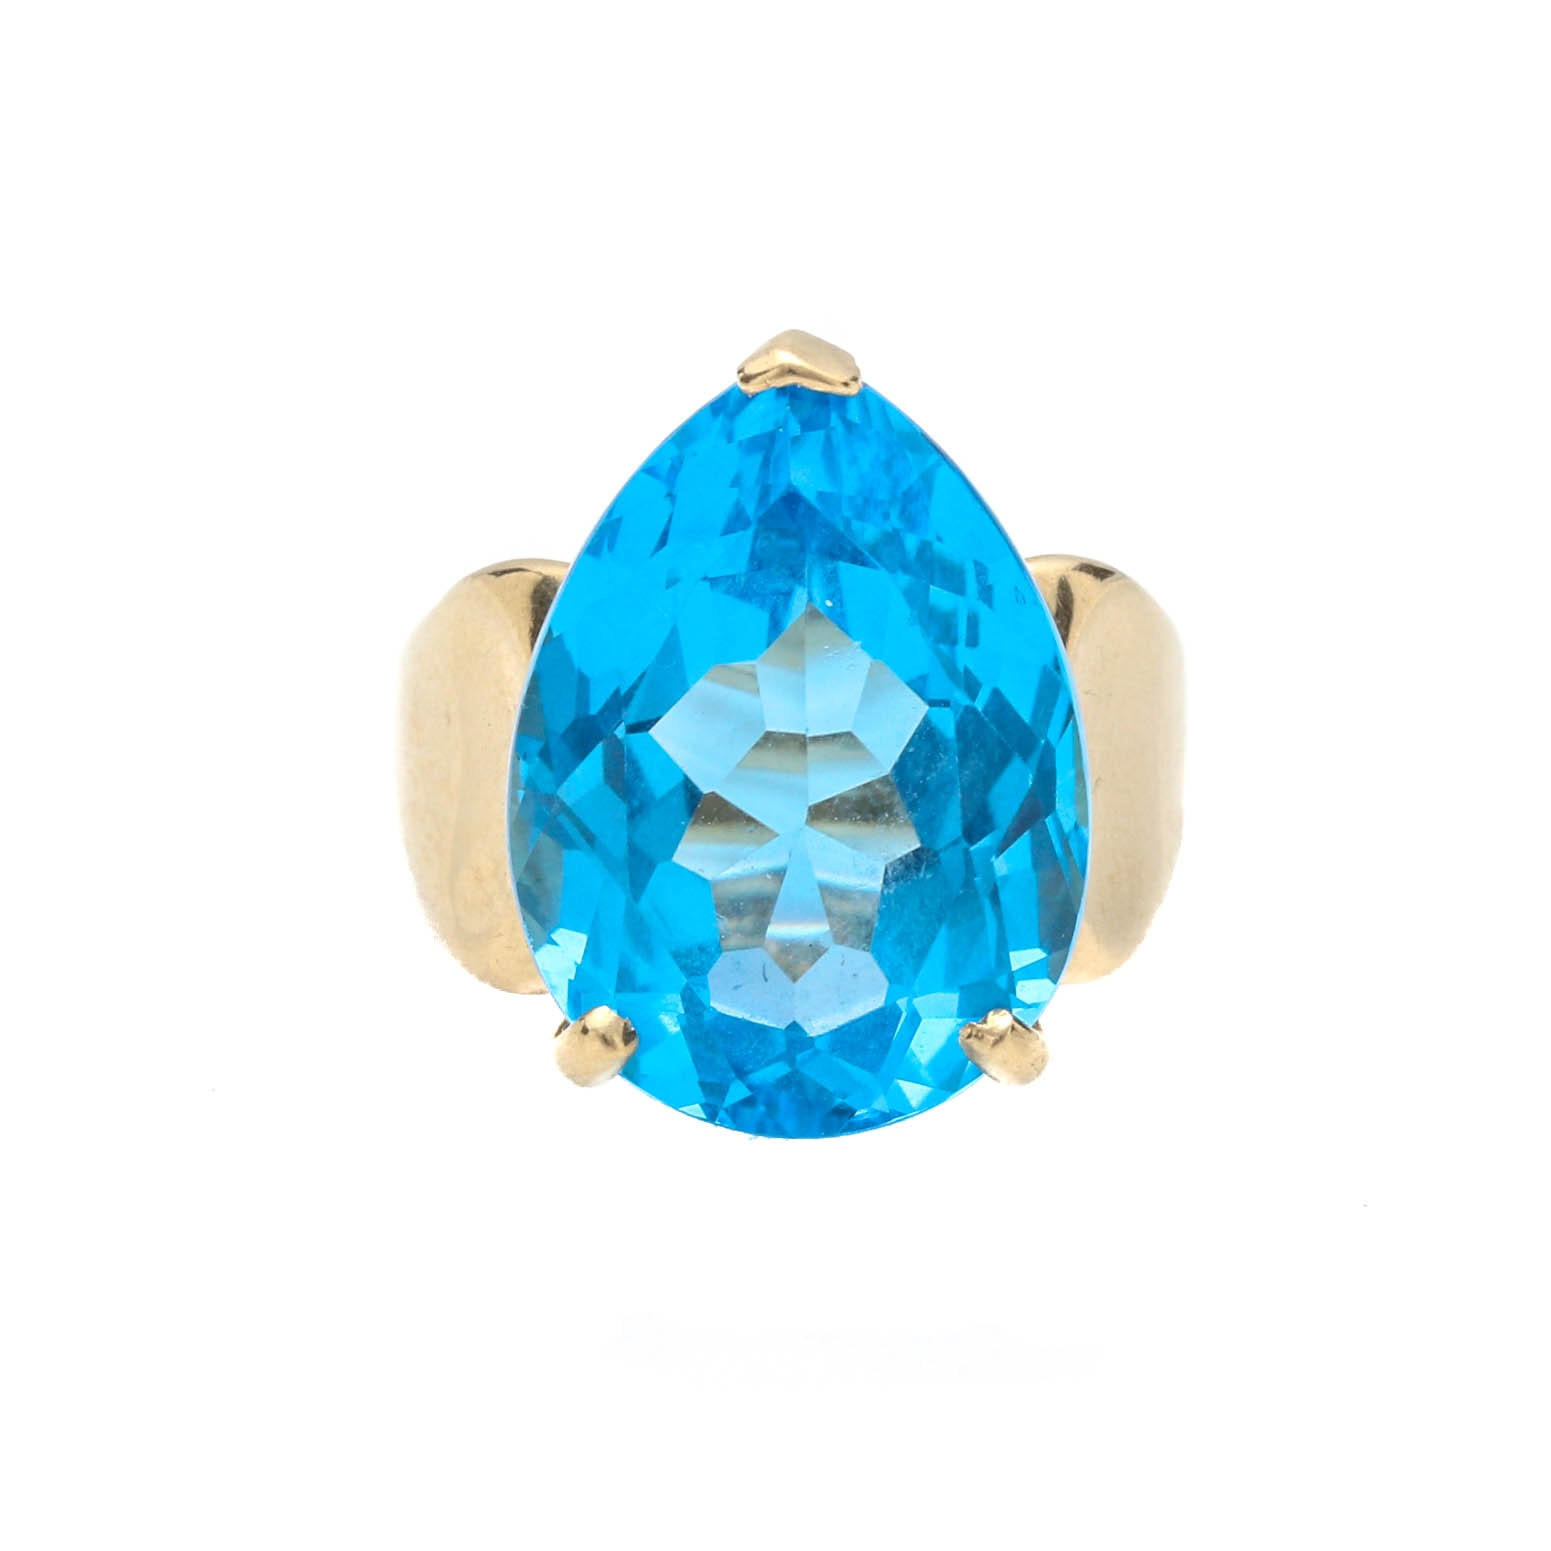 14K Yellow Gold 18.78 CT Blue Topaz Ring